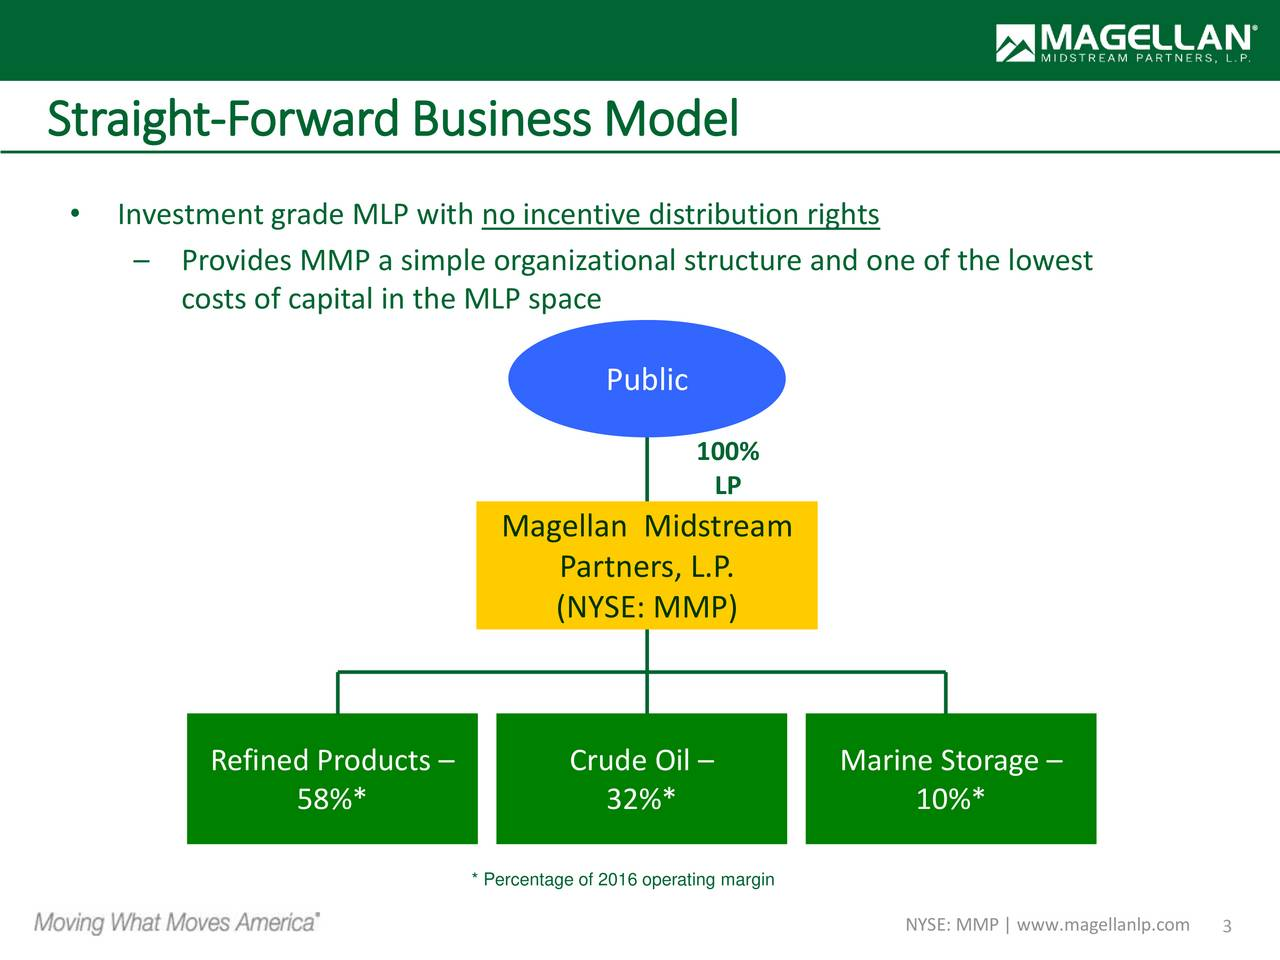 Investment grade MLP with no incentive distribution rights Provides MMP a simple organizational structure and one of the lowest costs of capital in the MLP space Public 100% LP Magellan Midstream Partners, L.P. (NYSE: MMP) Refined Products  Crude Oil  Marine Storage 58%* 32%* 10%* * Percentage of 2016 operating margin NYSE: MMP | www.magella3lp.com